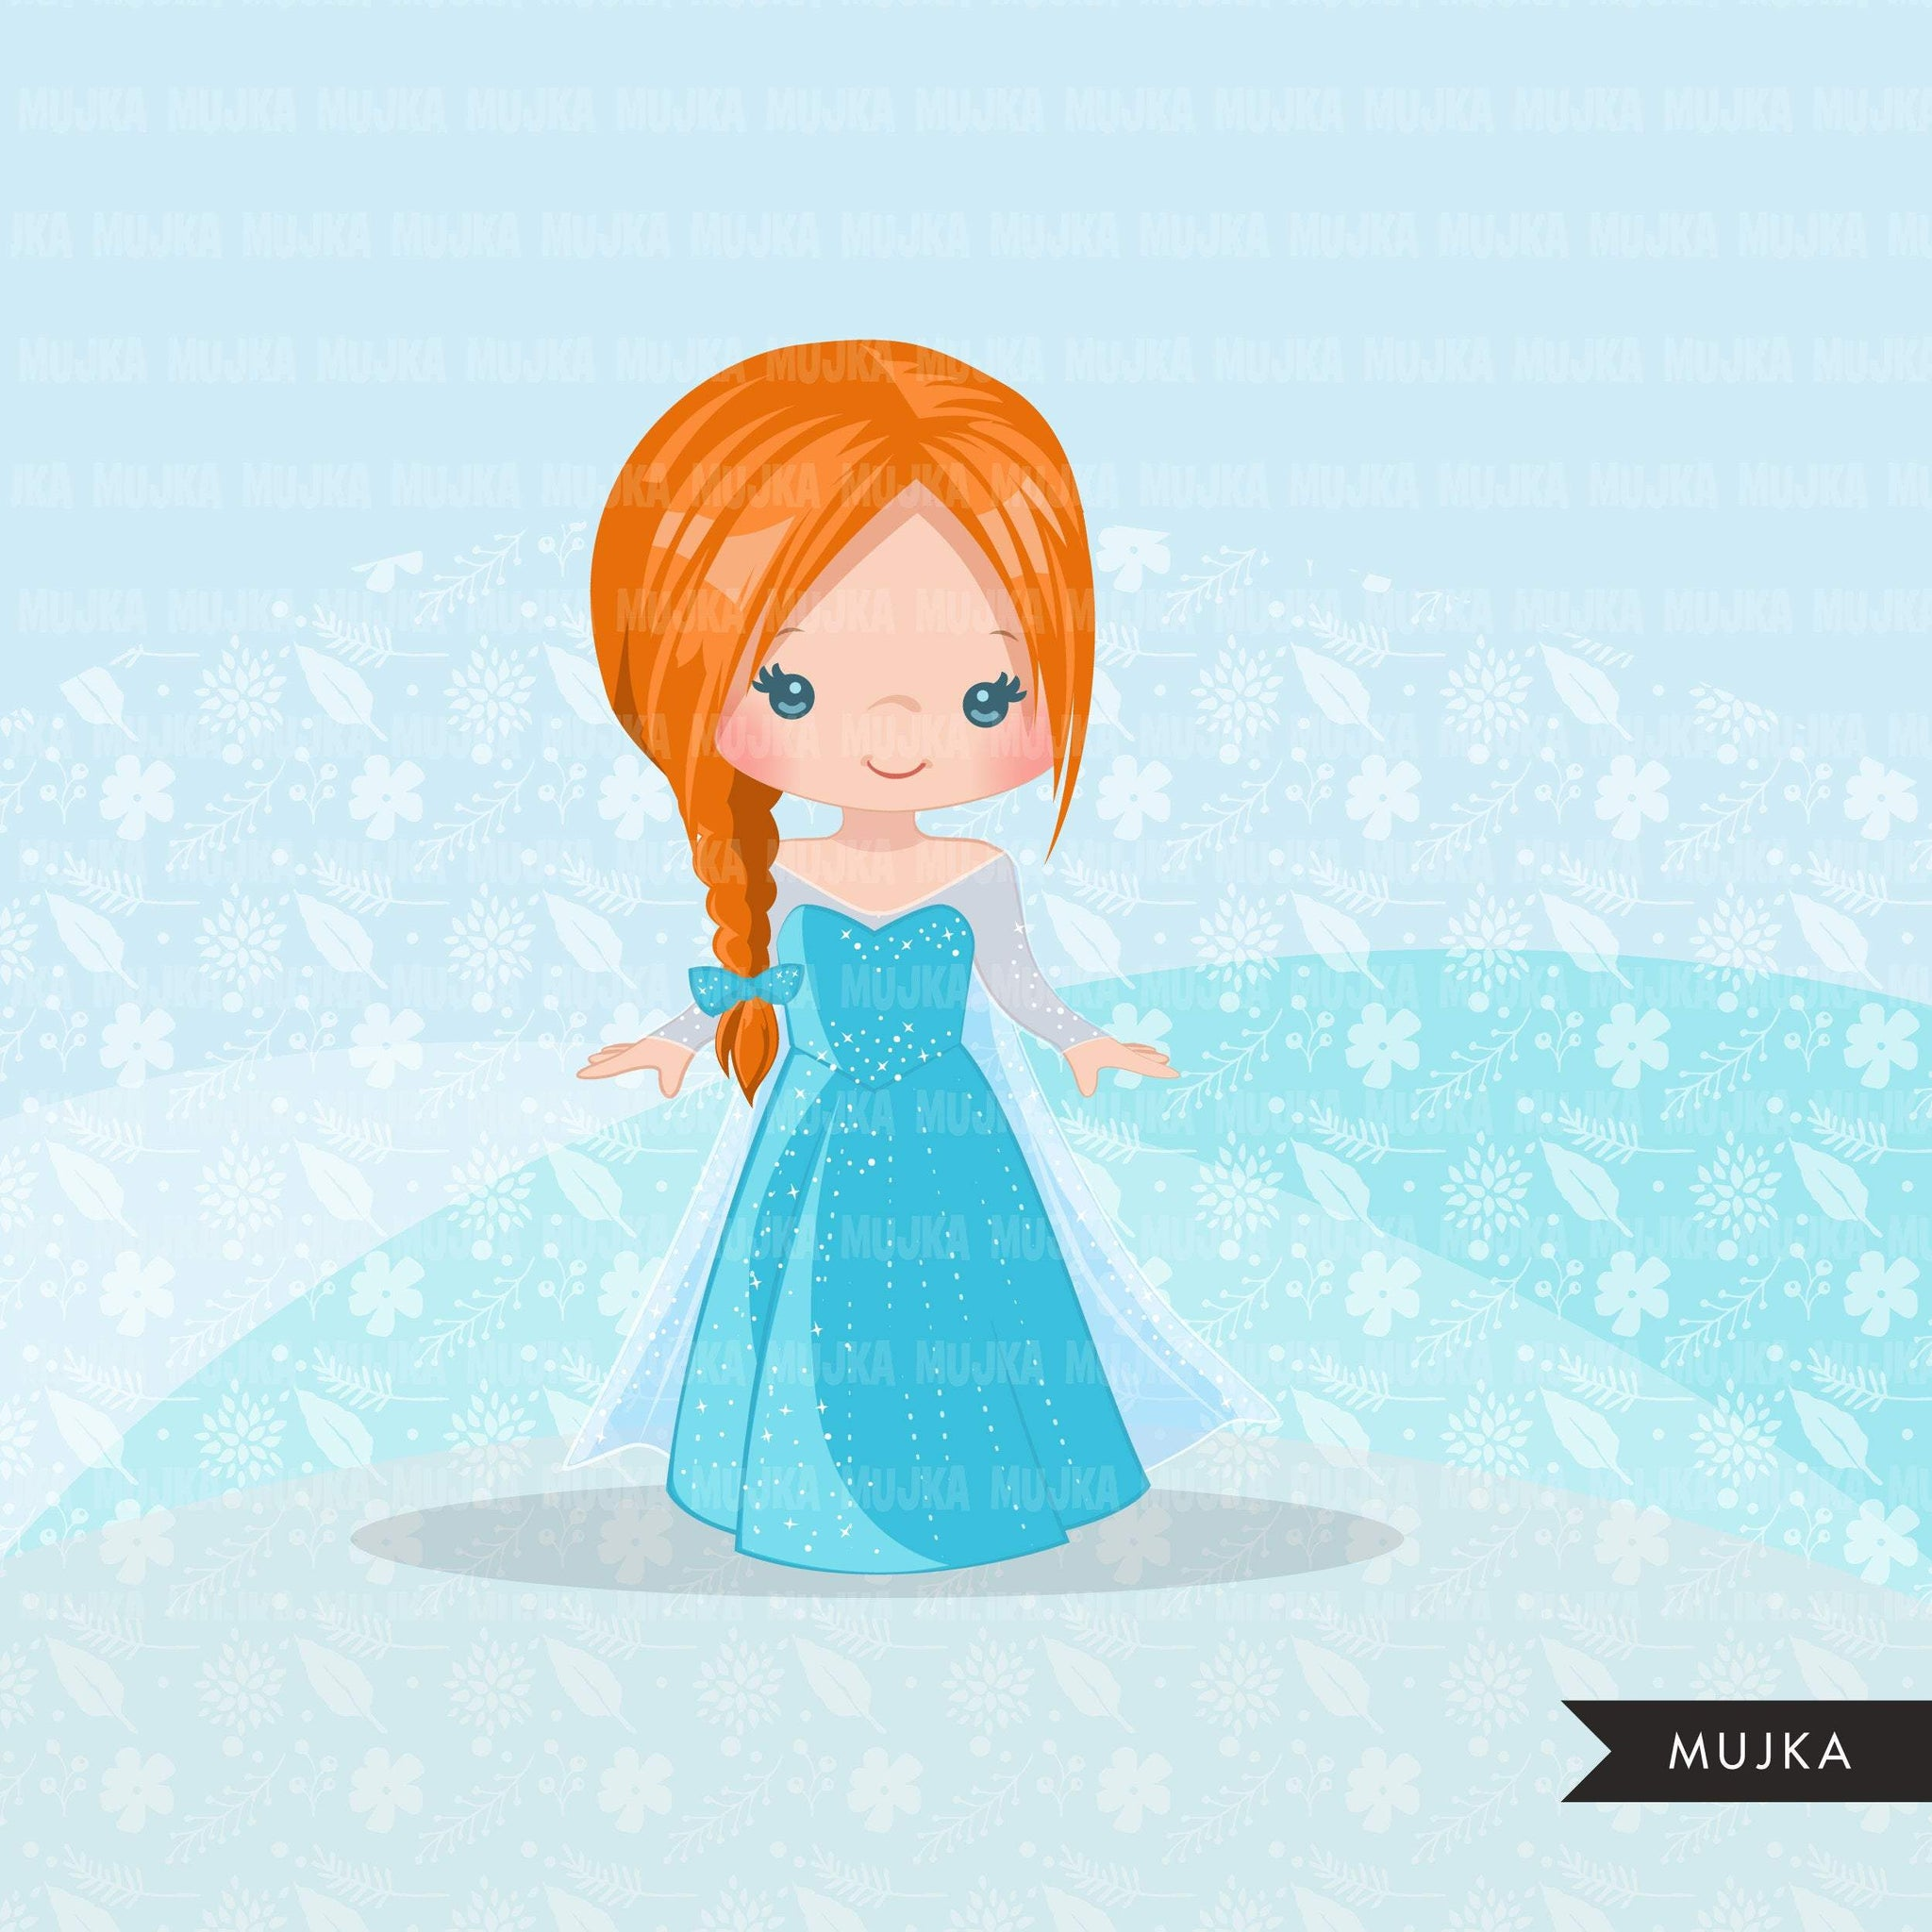 Princess clipart, fairy tale graphics, girls story book, light blue princess dress, commercial use clip art